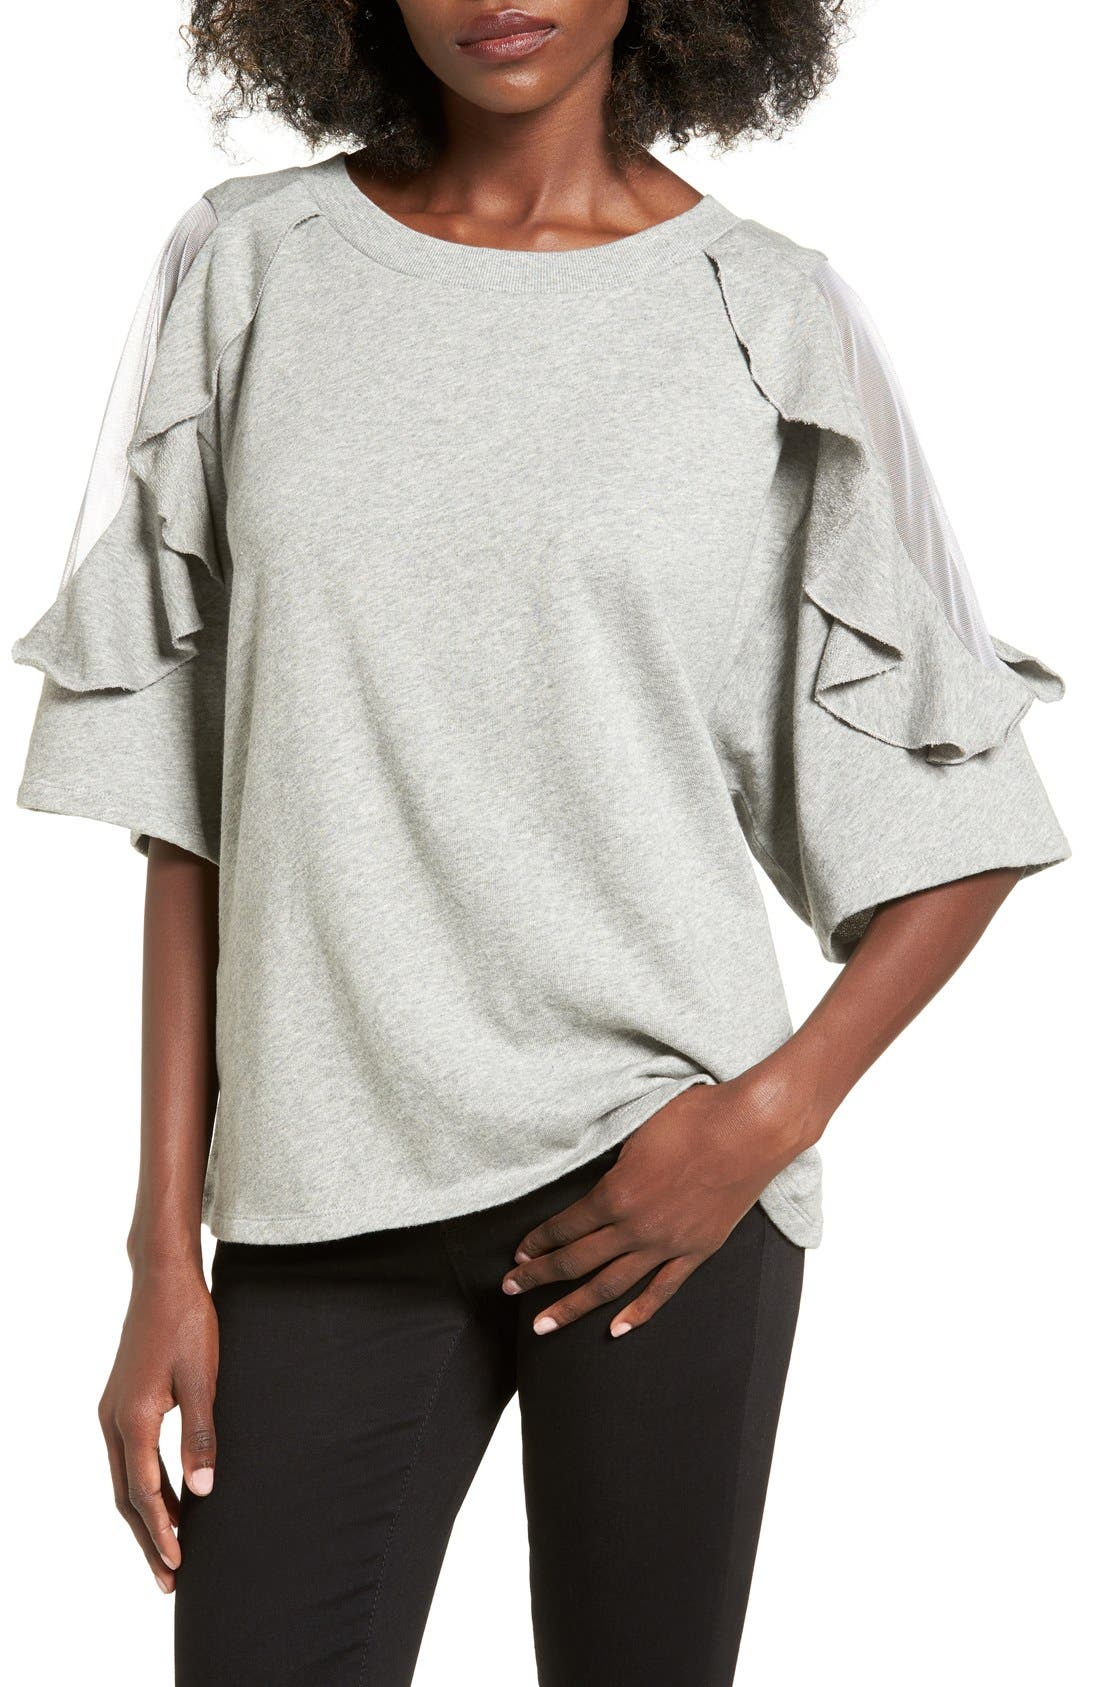 Main Image - BP. Ruffle Sleeve Sweatshirt